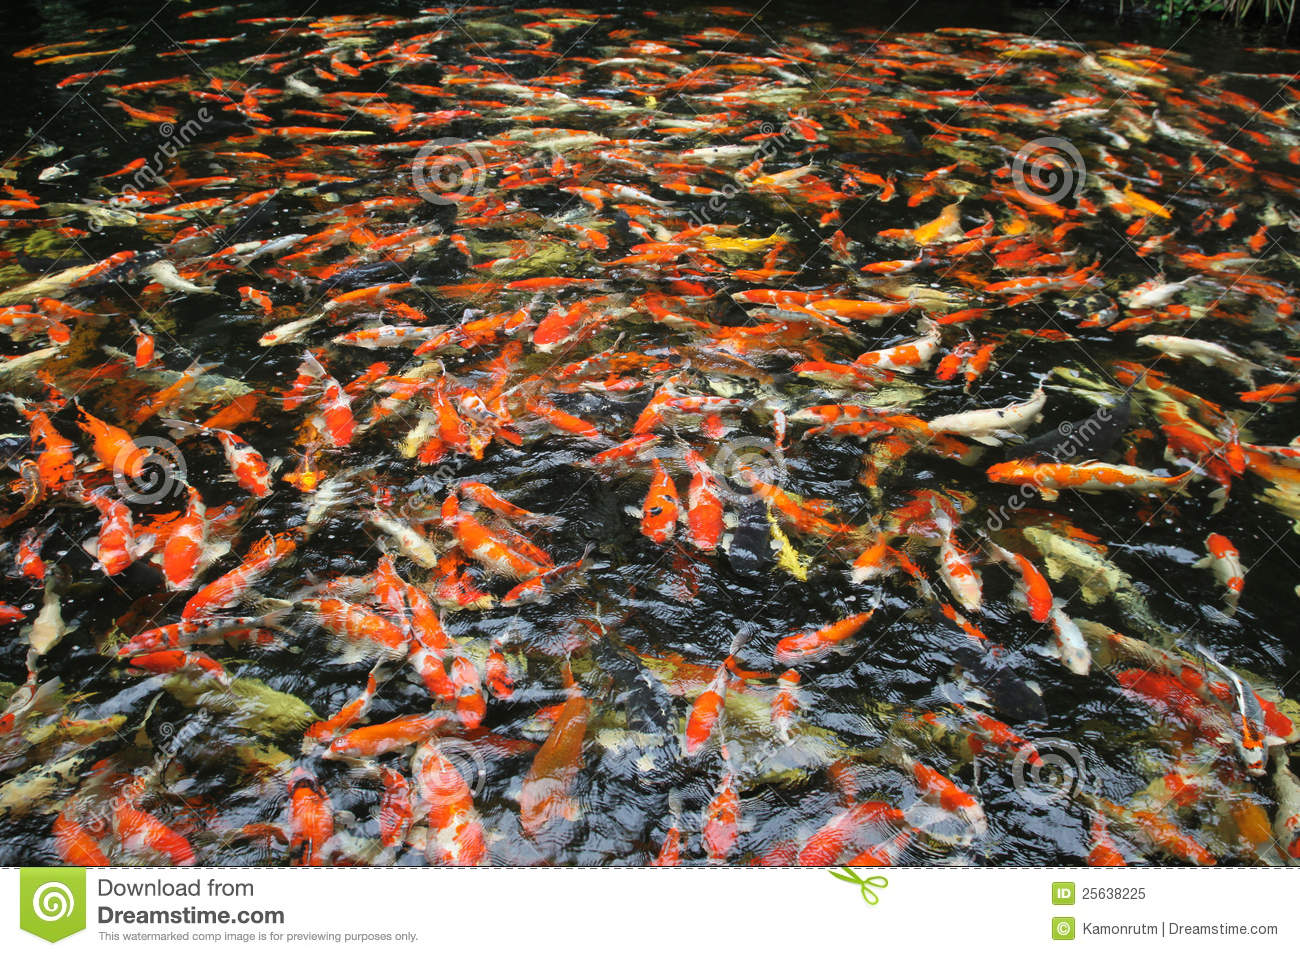 Hundreds of fancy carp koi fish in pool stock image for Koi fish swimming pool